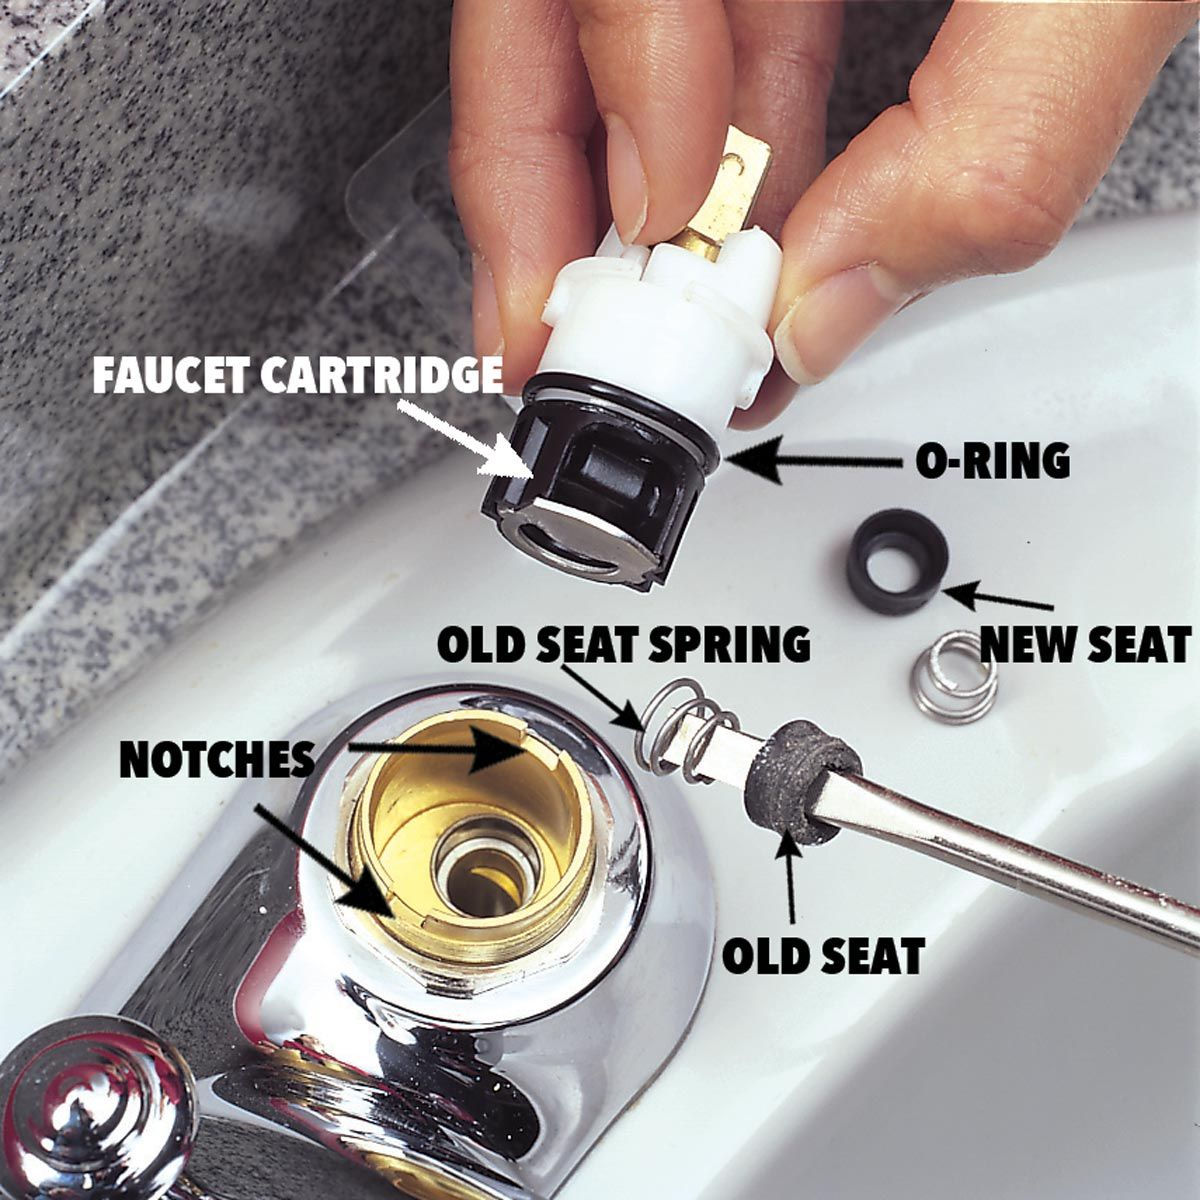 Quickly Fix A Leaky Faucet Cartridge Delta Kitchen Faucet Faucet Repair Leaky Faucet